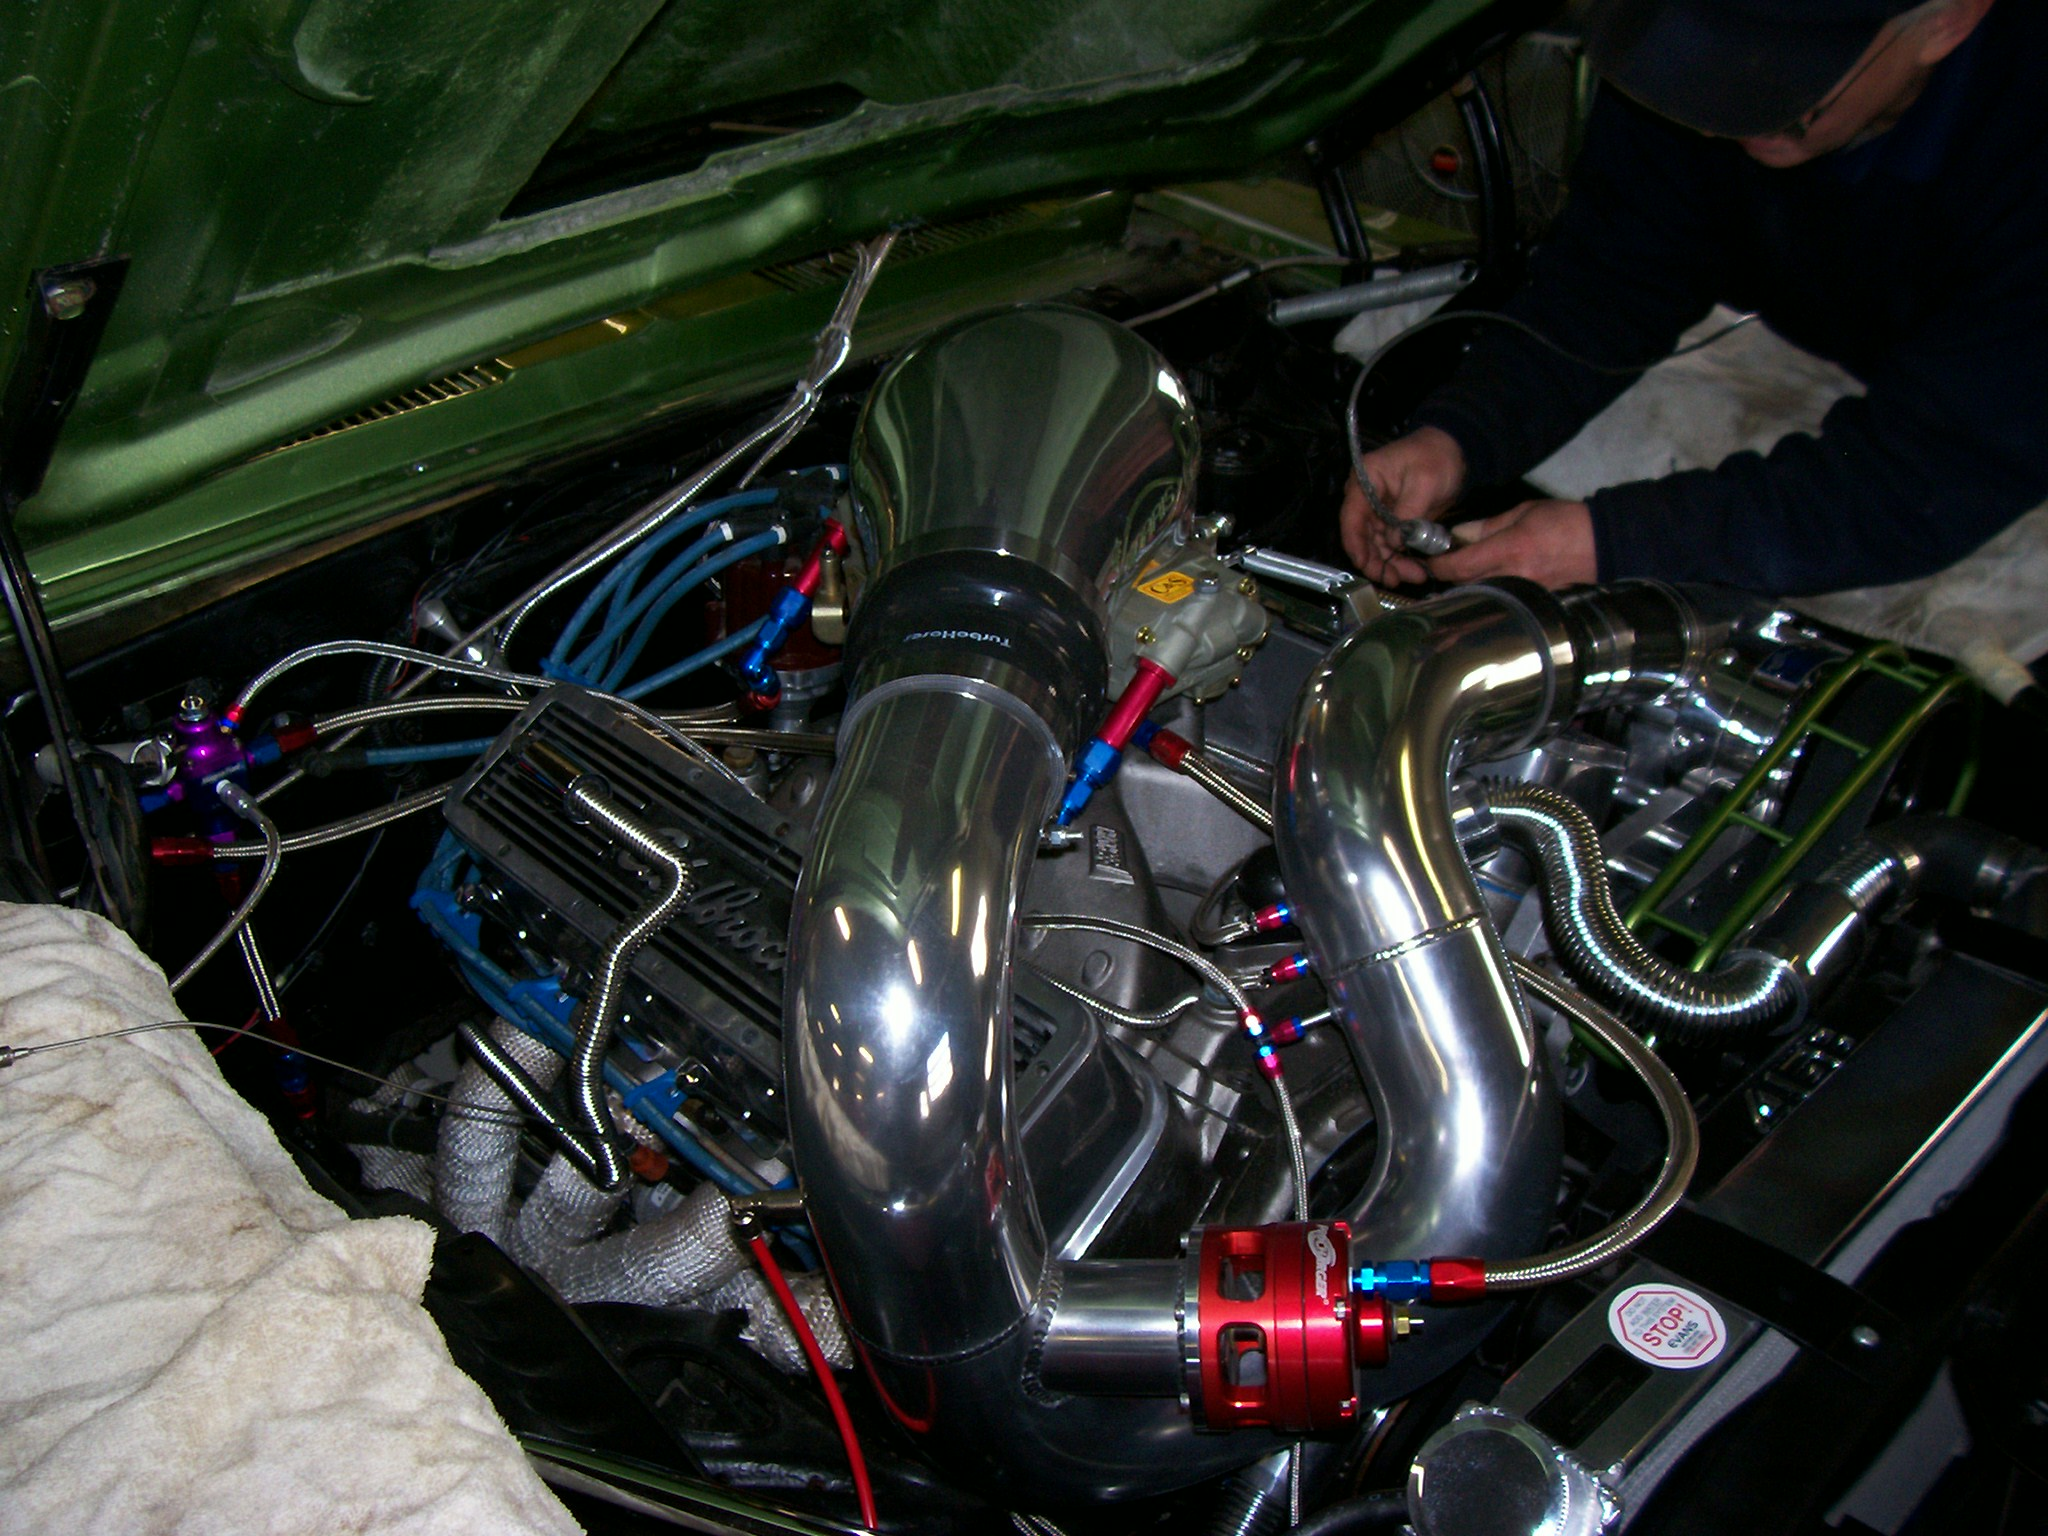 small block chevy-supercharged- salvo borthers